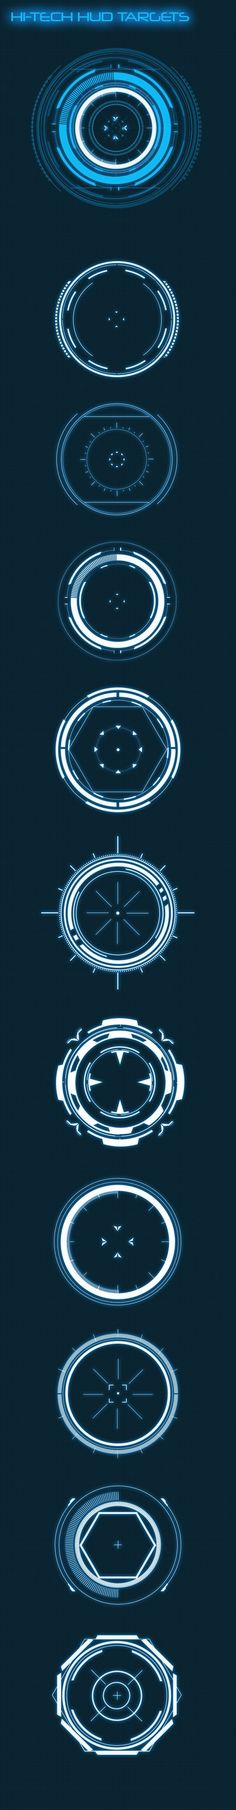 Hi-Tech HUD Targets (Custom Shapes) - Shapes Photoshop